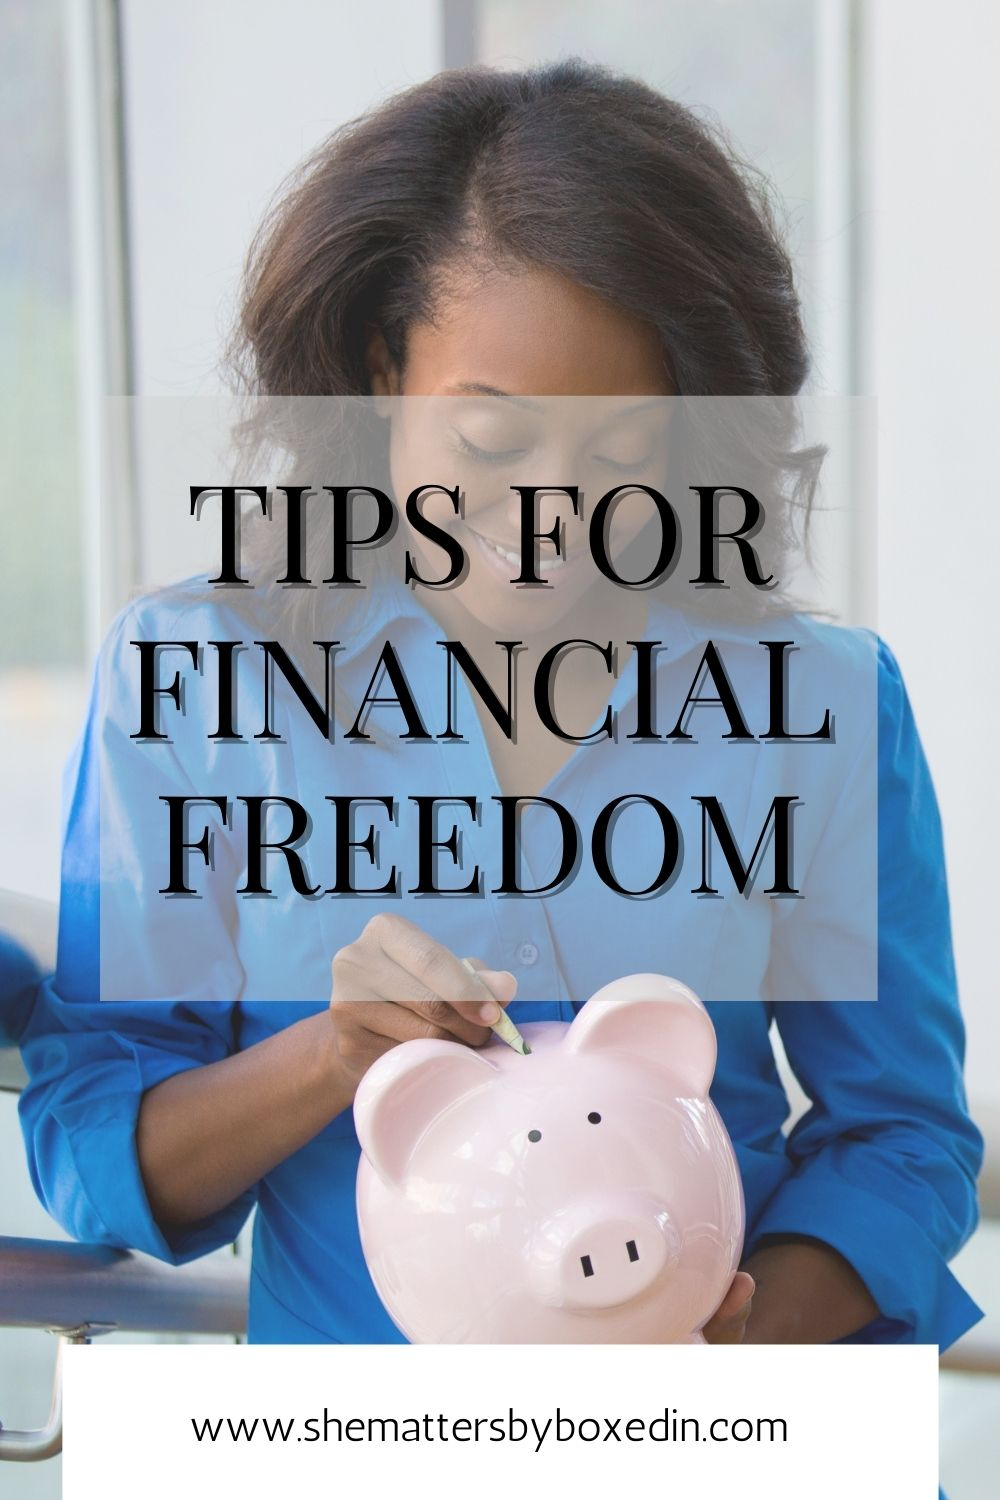 TIPS FOR FINANCIAL FREEDOM